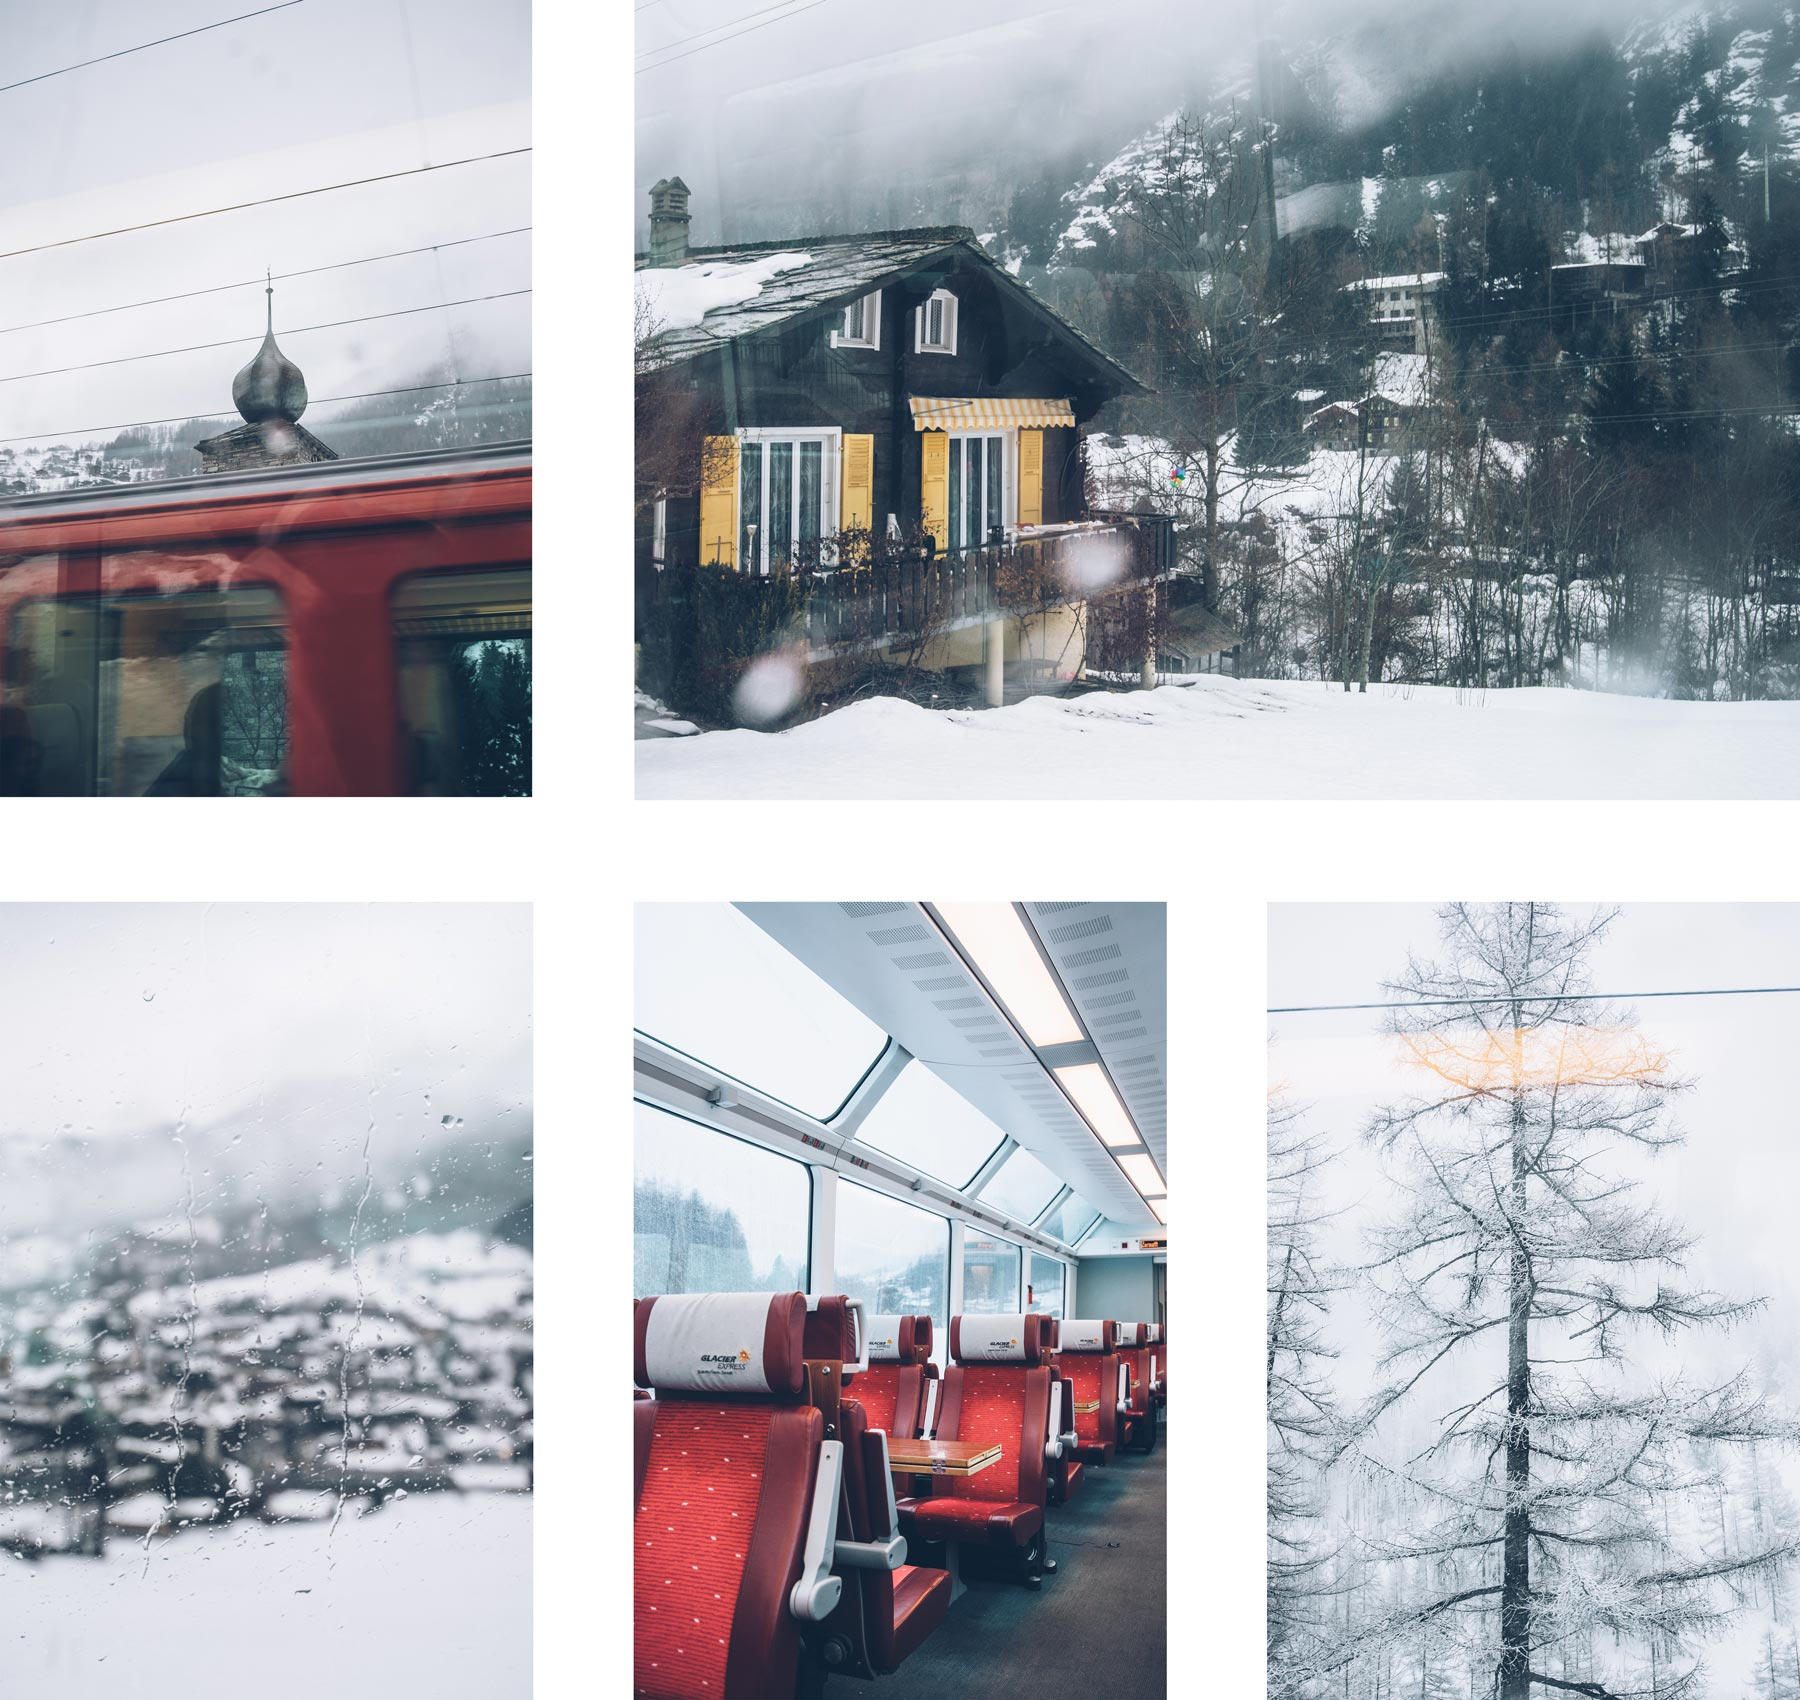 Train panoramique Suisse: Le Glacier Express